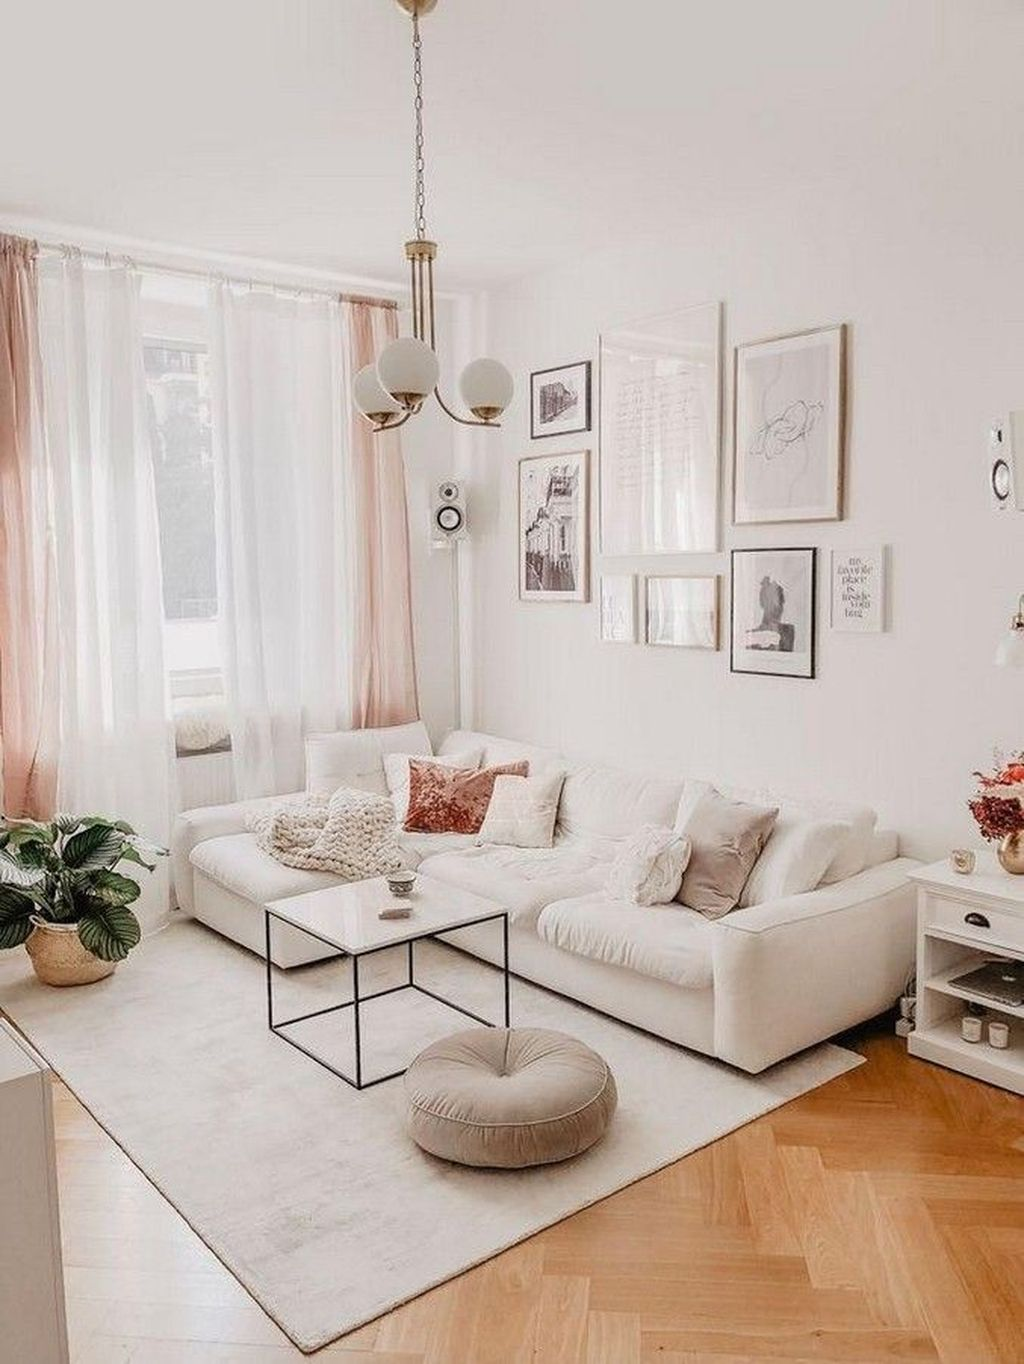 Fascinating Small Apartment Living Room Decor Ideas 21